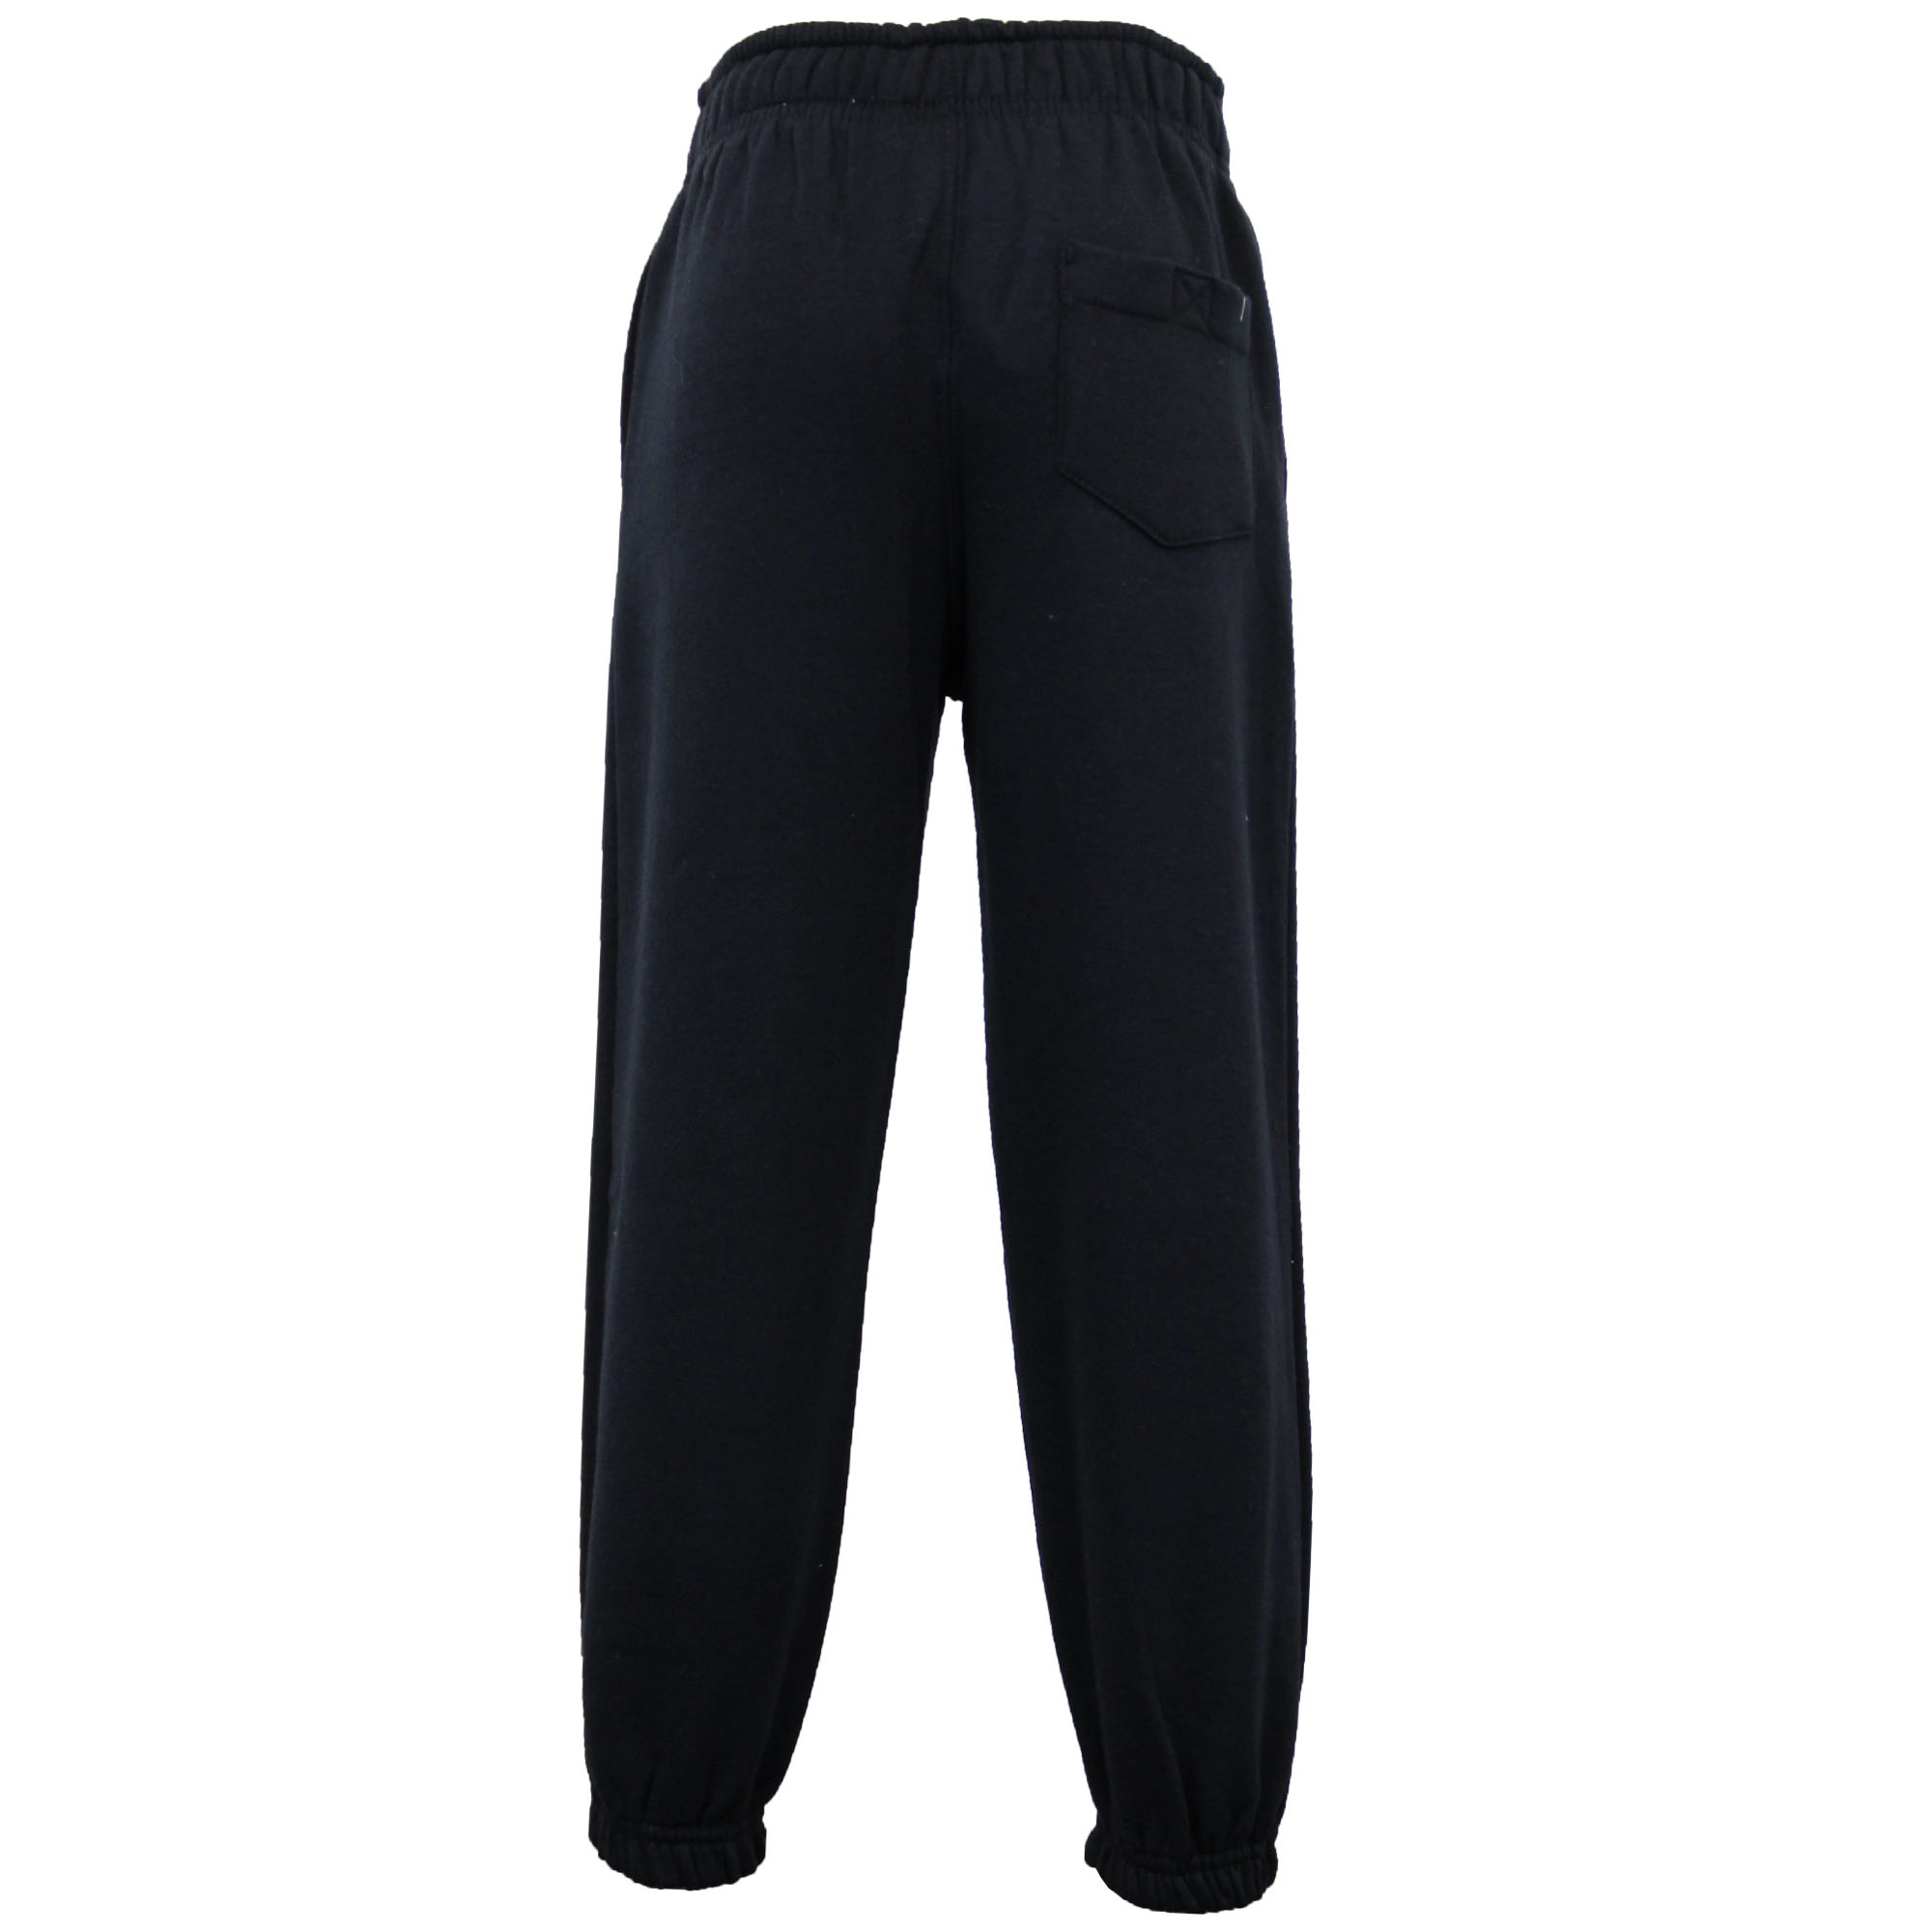 Boys Jogging Bottoms Discover a comfy pair of jogging bottoms for your little one to stay fashionable in. All of our boy's joggers are cosy and fun to wear while they stay active.